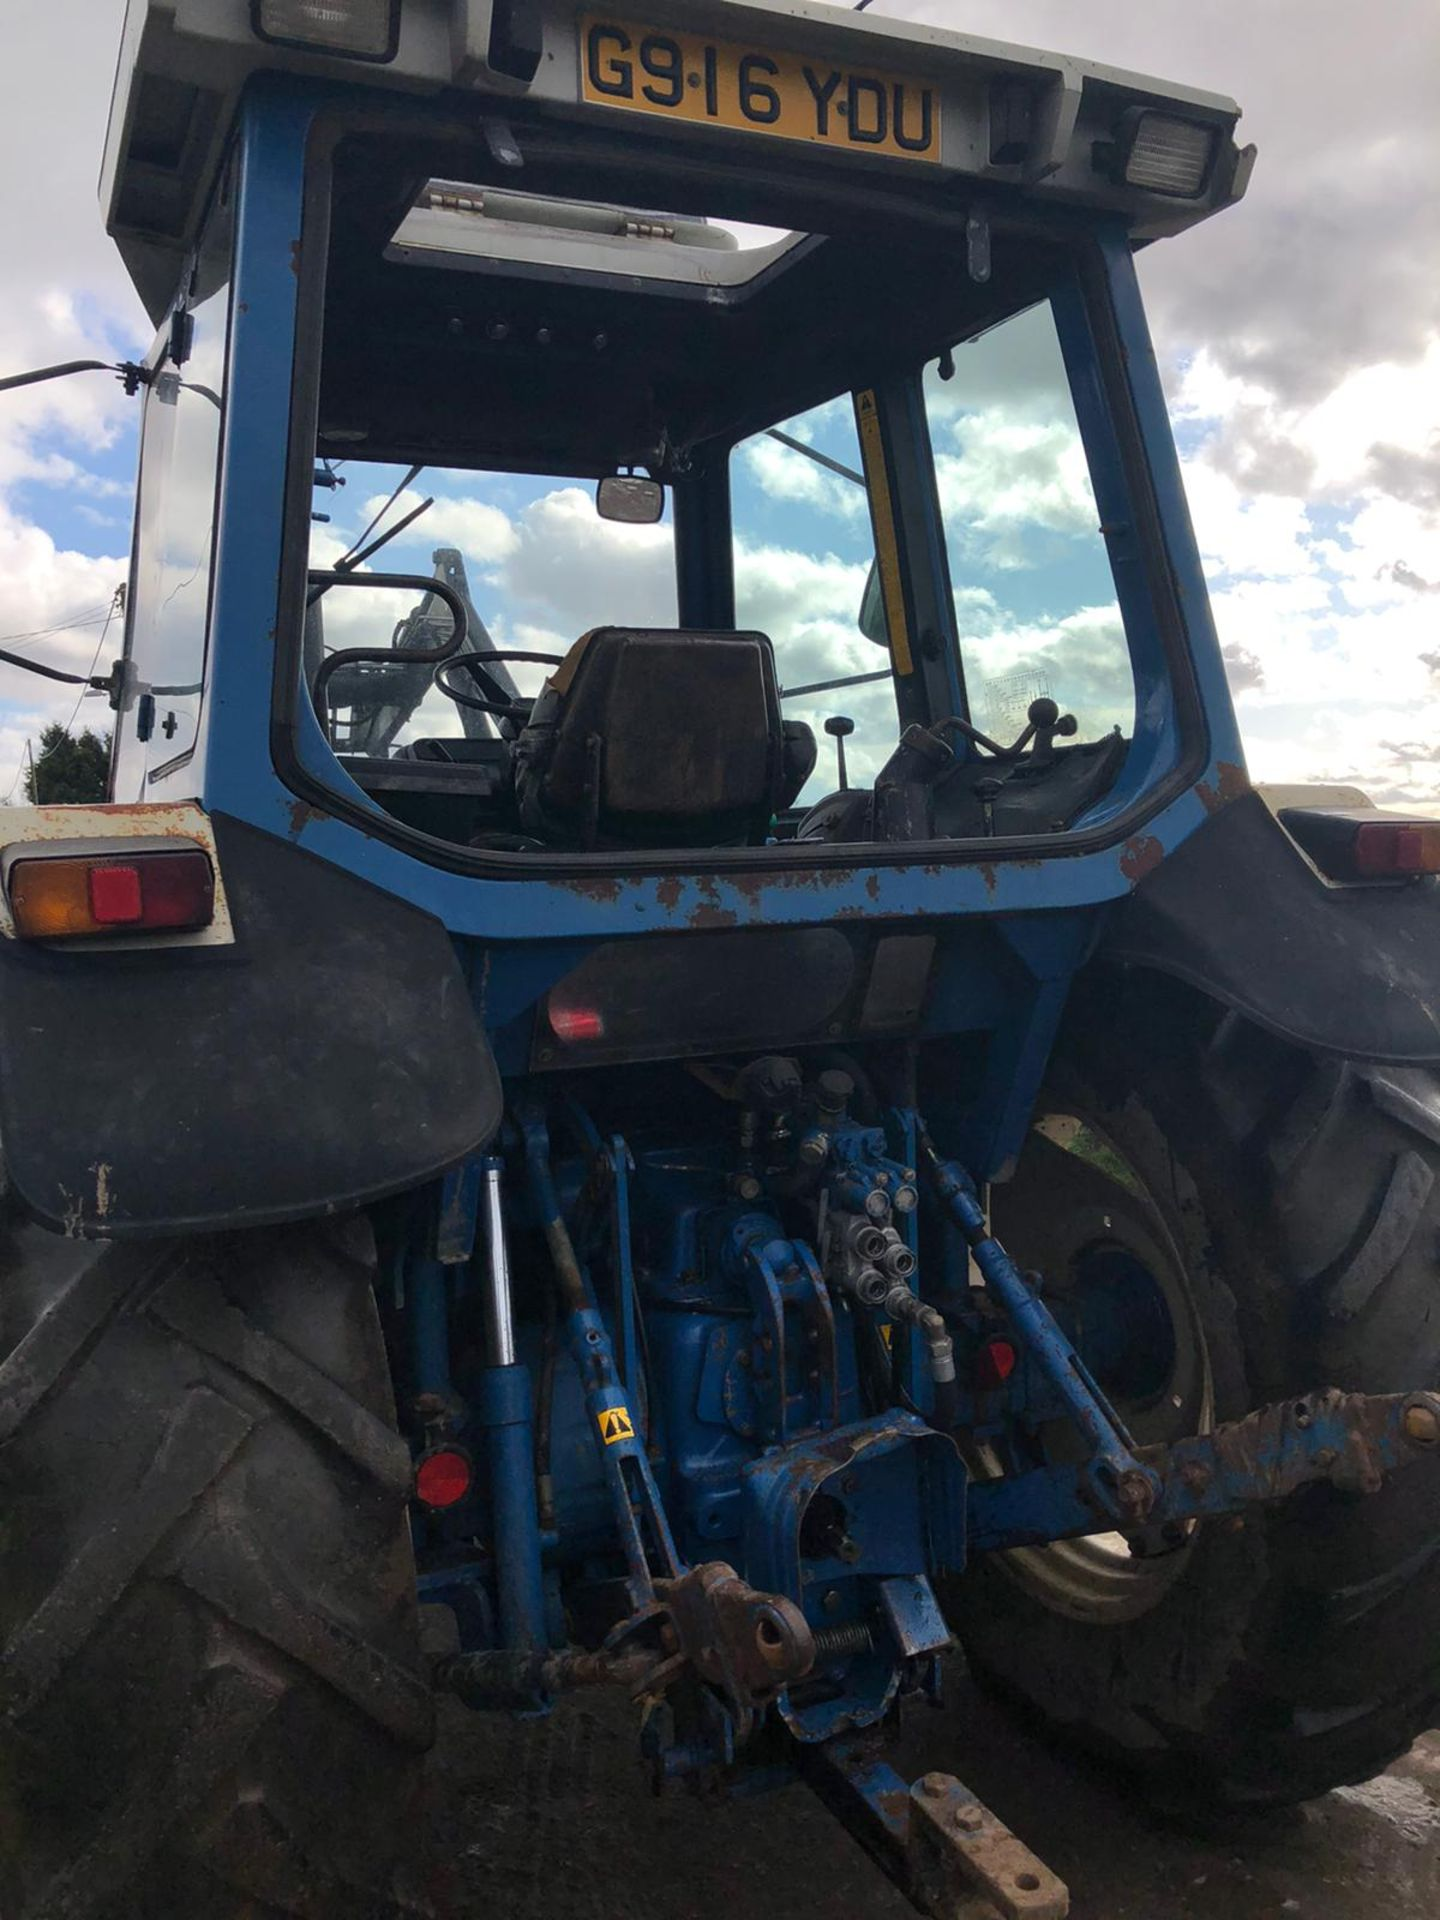 Lot 42 - 1990/G REG FORD NEW HOLLAND 7610 BLUE TRACTOR, C/W FRONT LOADER, SHOWING 1 FORMER KEEPER *PLUS VAT*